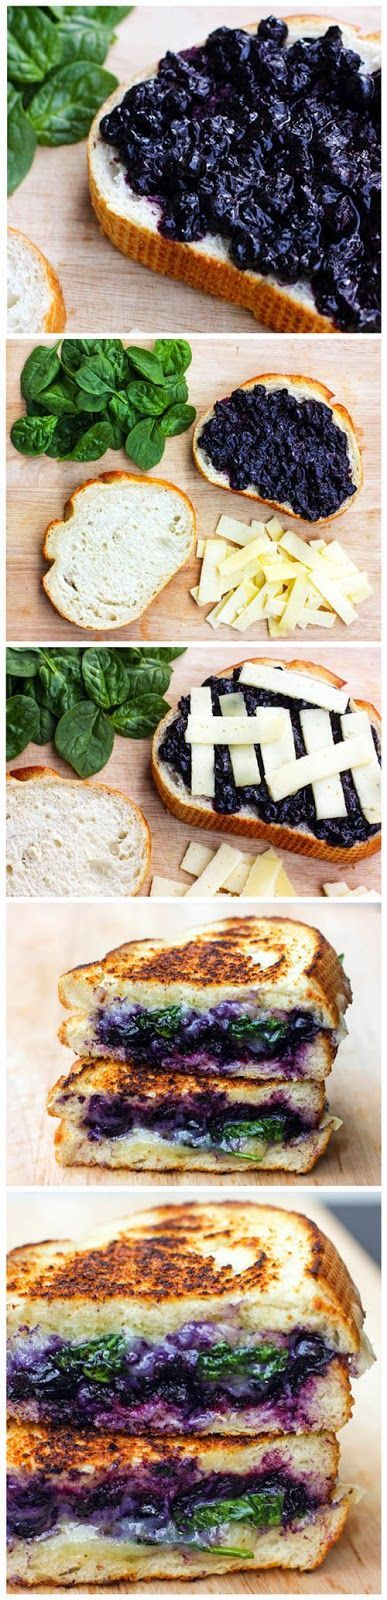 Balsamic Blueberry Grilled Cheese Sandwich- sounds interesting...will have to try to try it someday